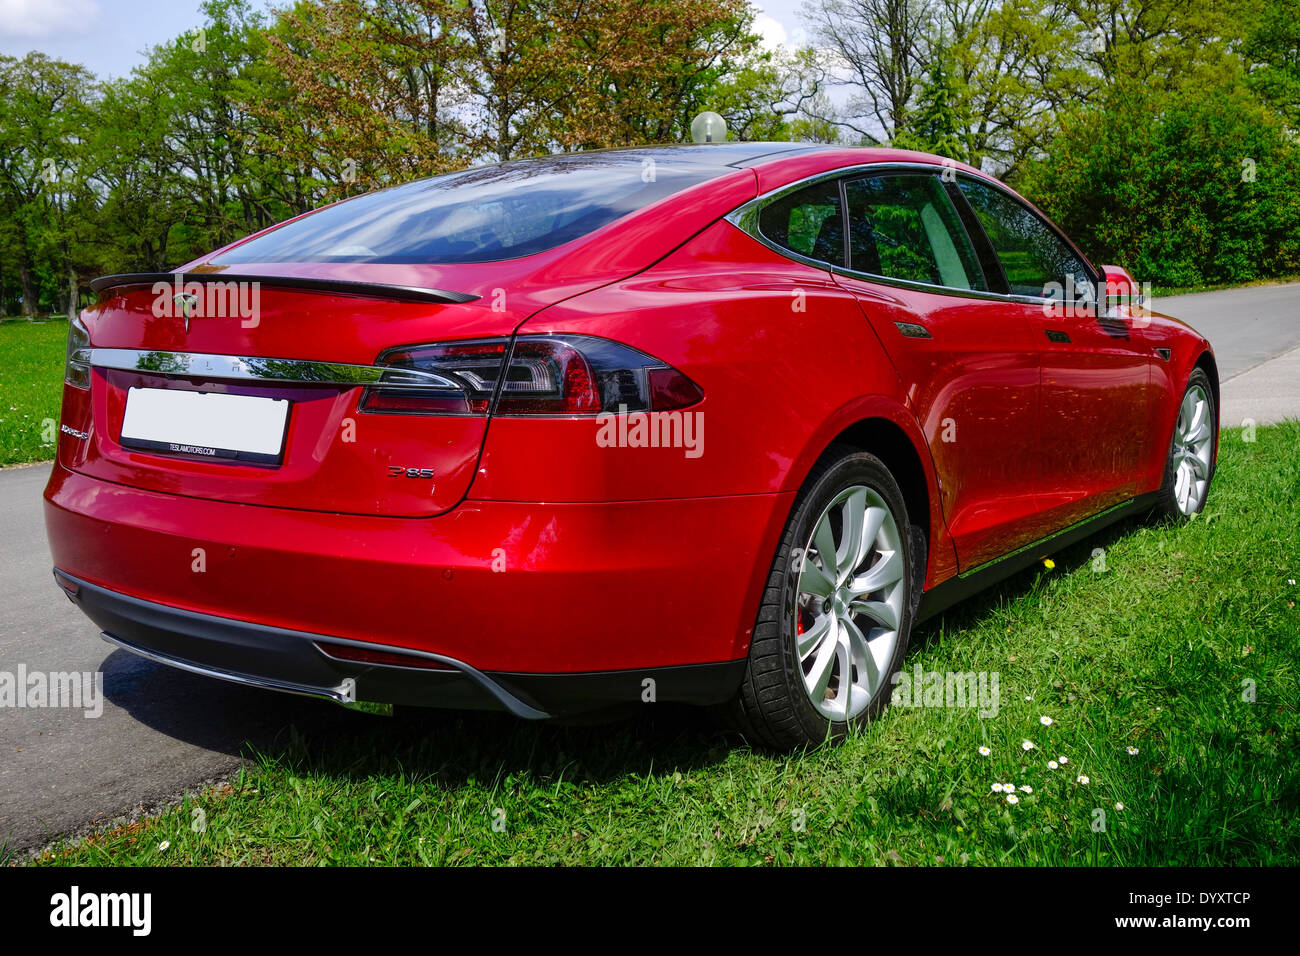 red tesla model s p85 a luxury electric car stock photo royalty free image 68816742 alamy. Black Bedroom Furniture Sets. Home Design Ideas